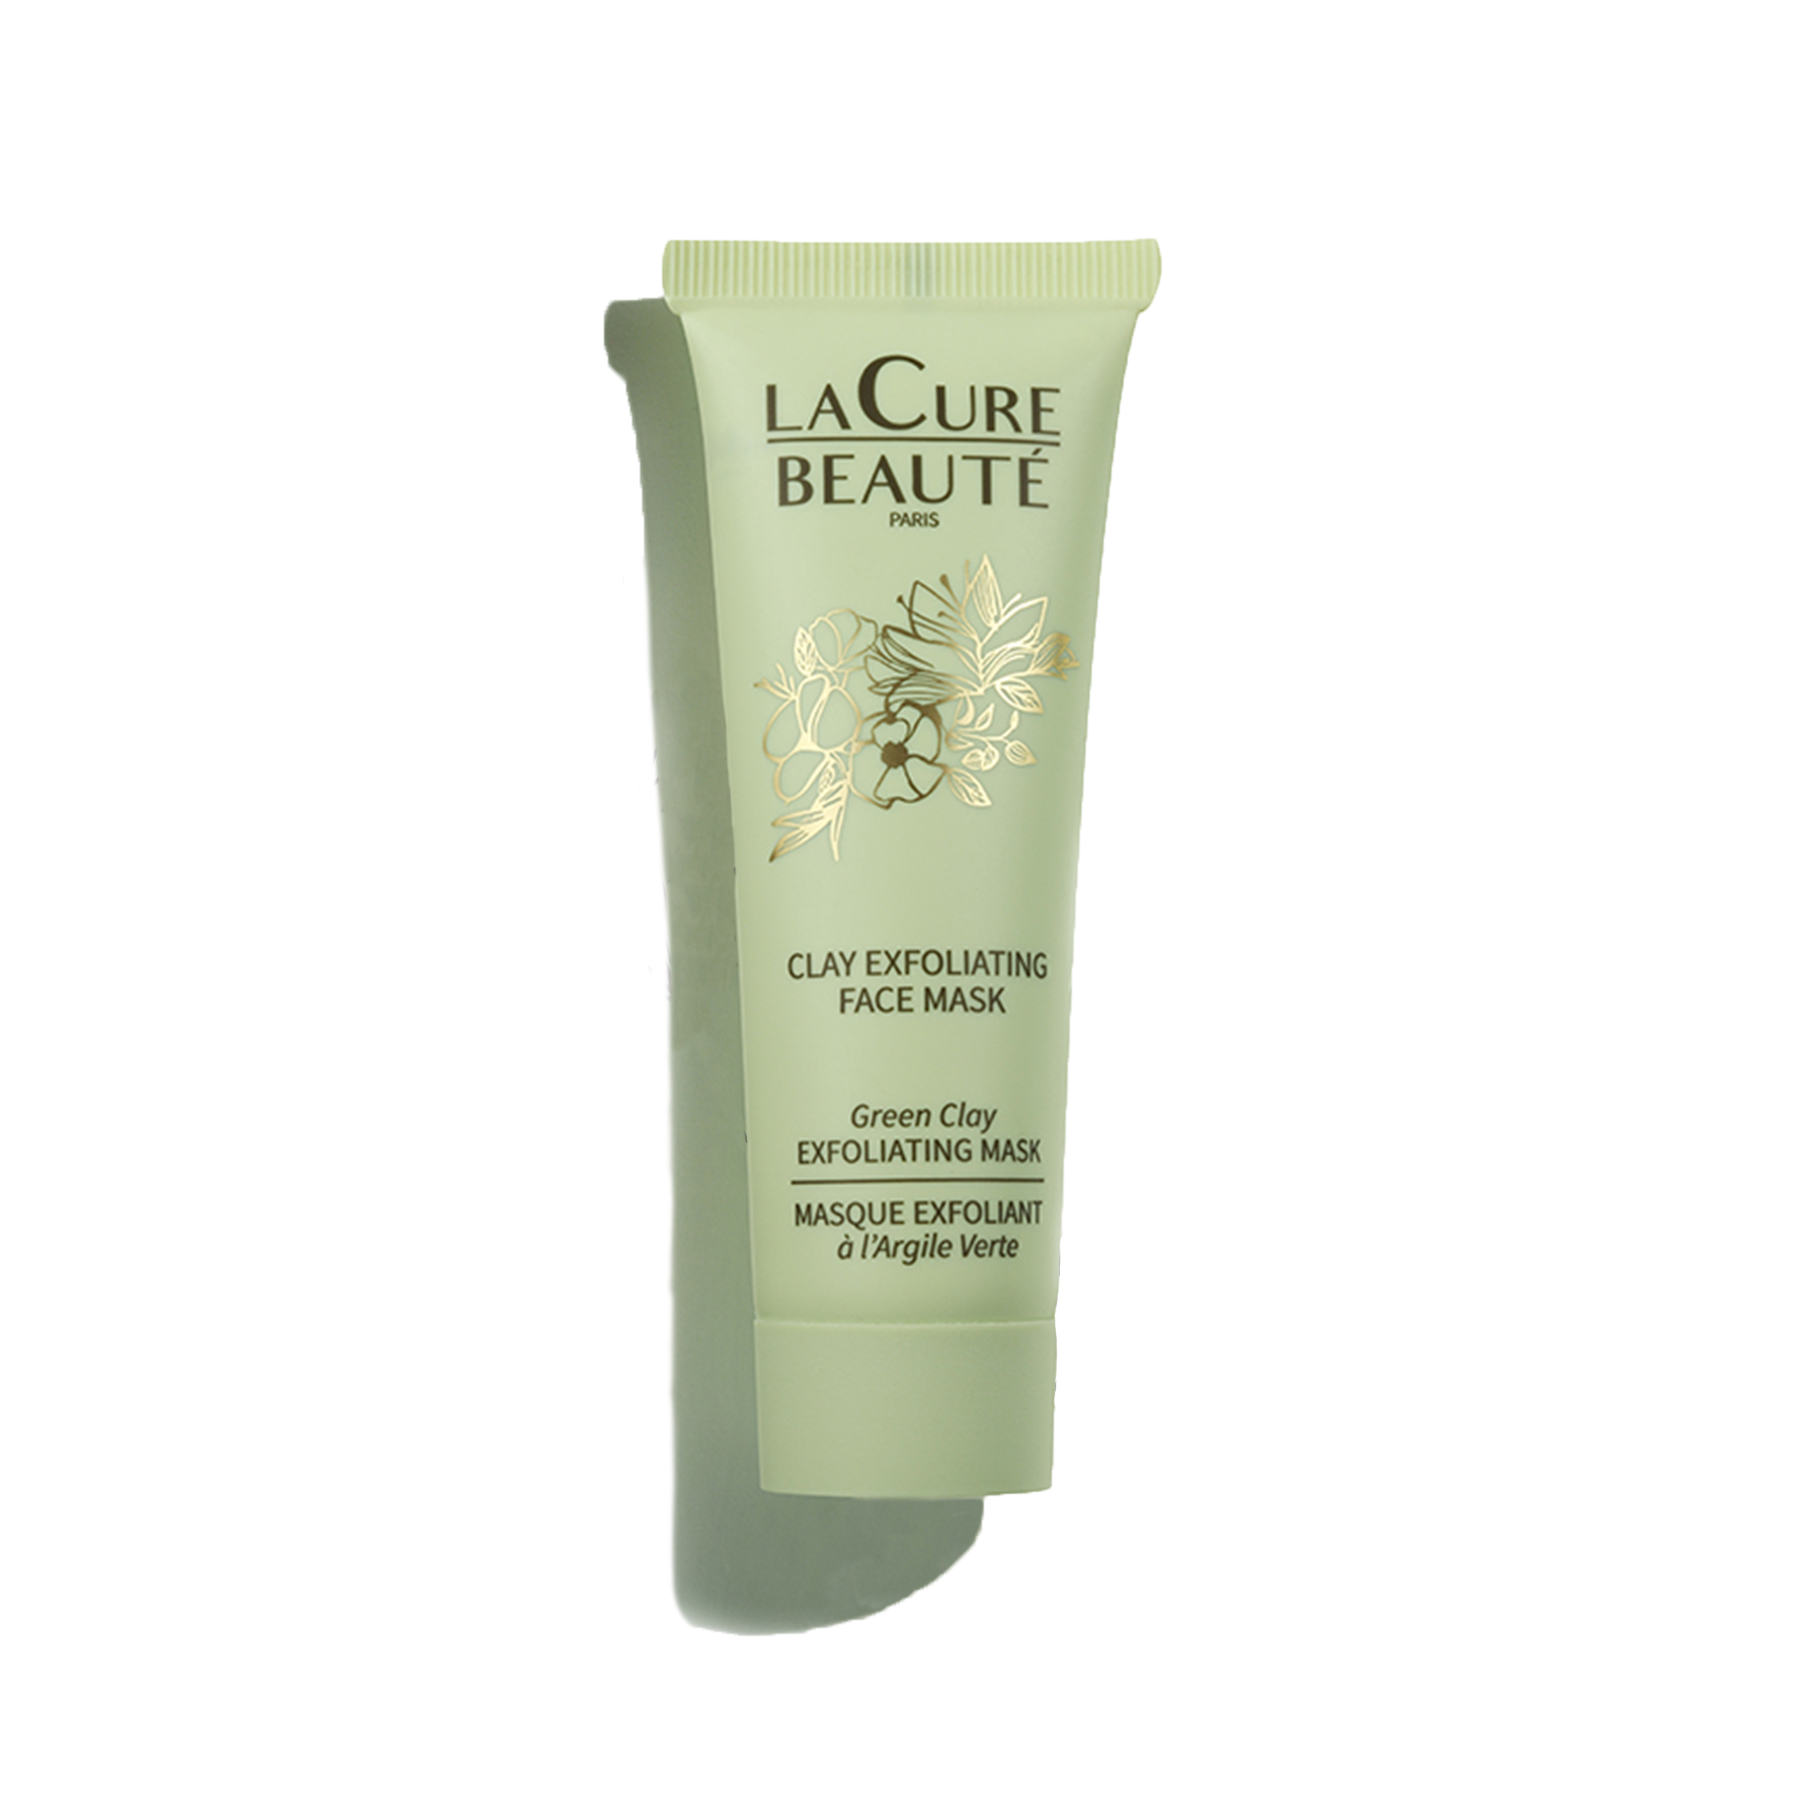 La Cure Beauté Clay Exfoliating Face Mask